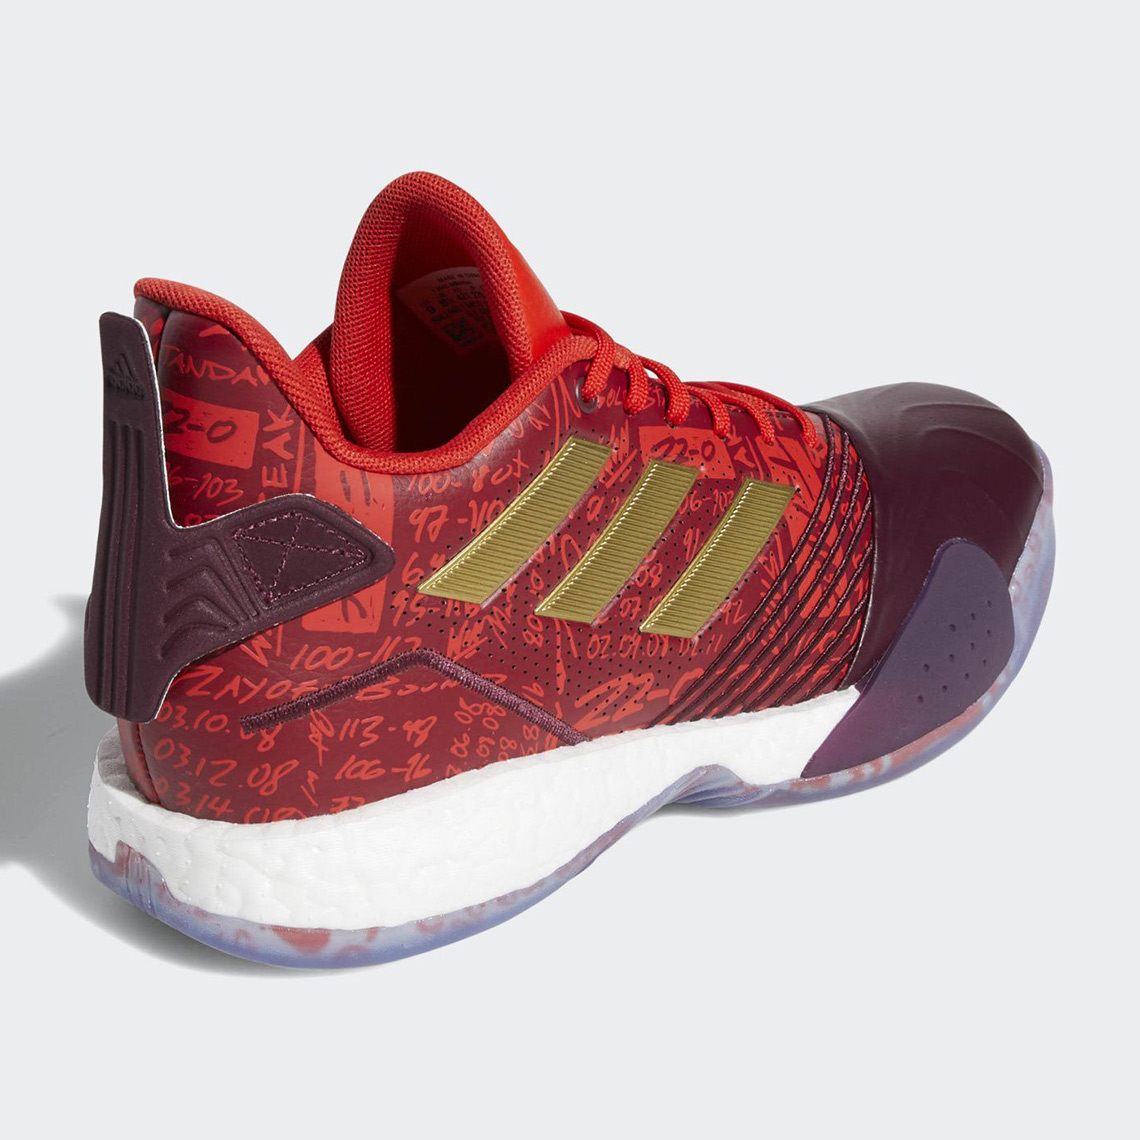 Adidas T Mac Millennium Performance Review